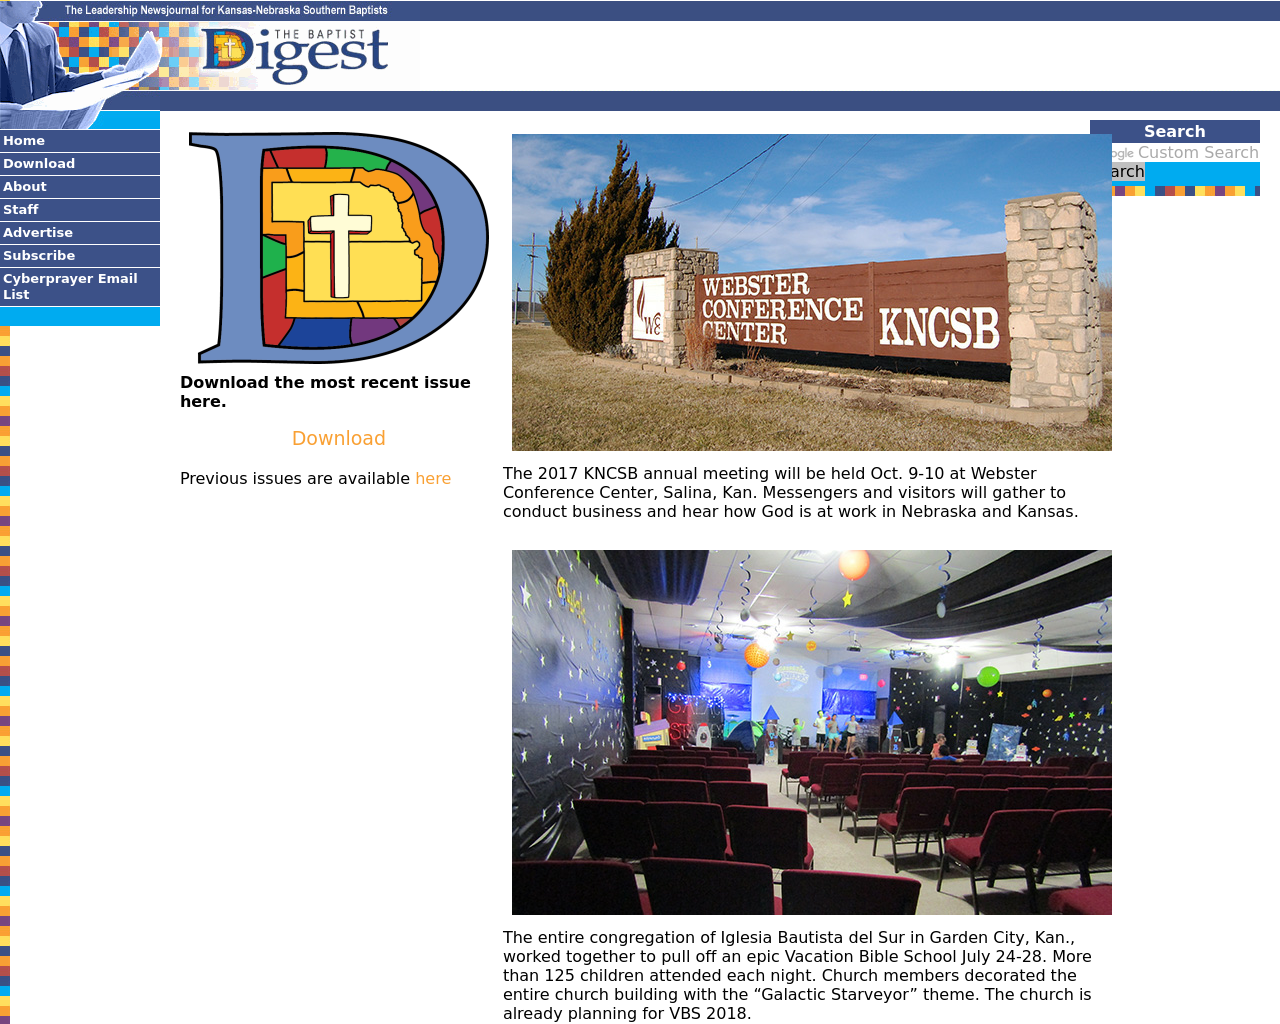 Baptist-Digest-Advertising-Reviews-Pricing